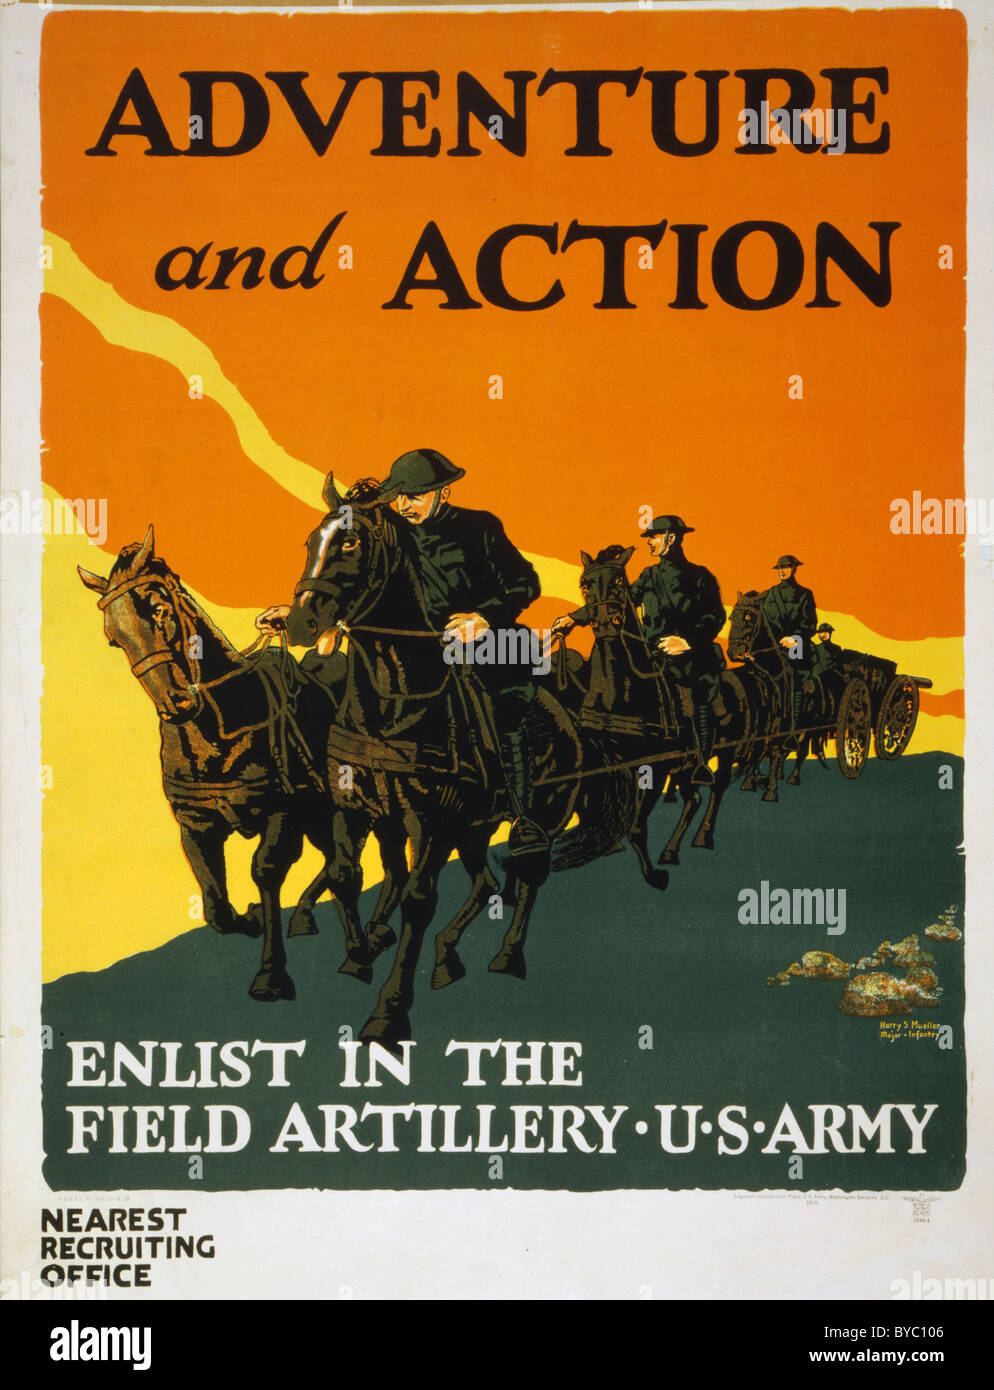 U.S. Army recruiting poster showing a soldiers on horseback with team of horses pulling artillery.1919 - Stock Image